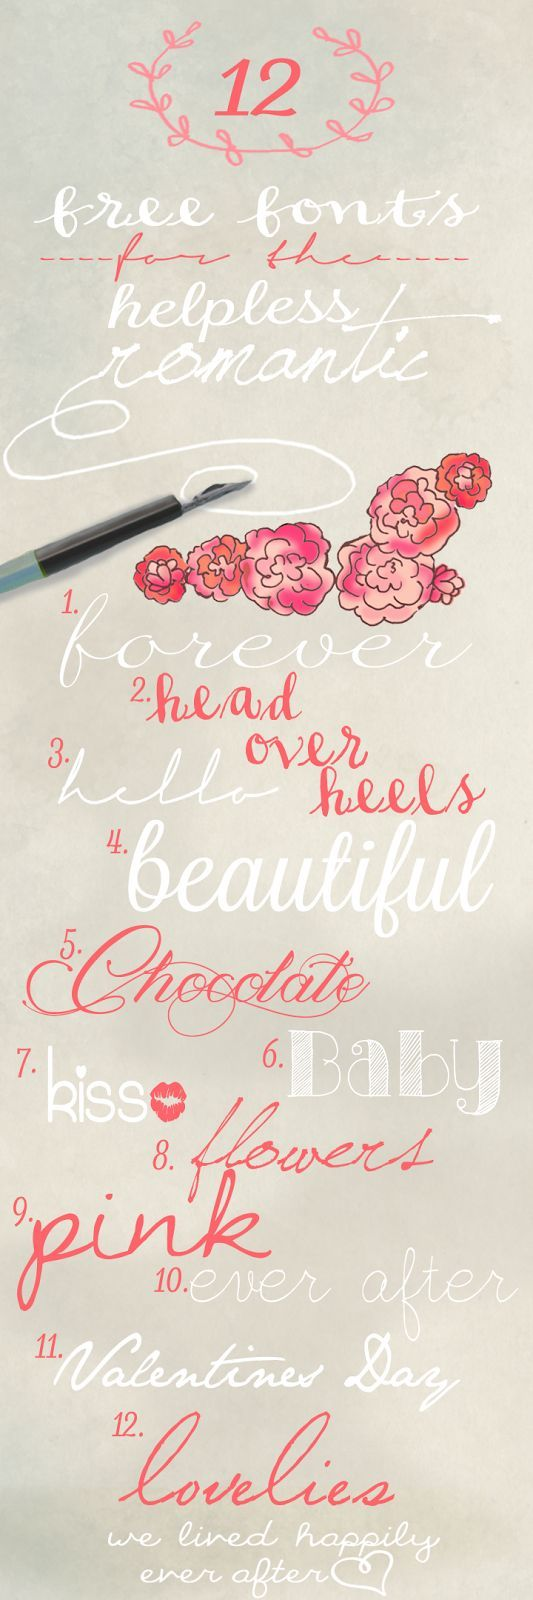 12 Free Fonts for the Helpless Romantic - We Lived Happily Ever After #fonts